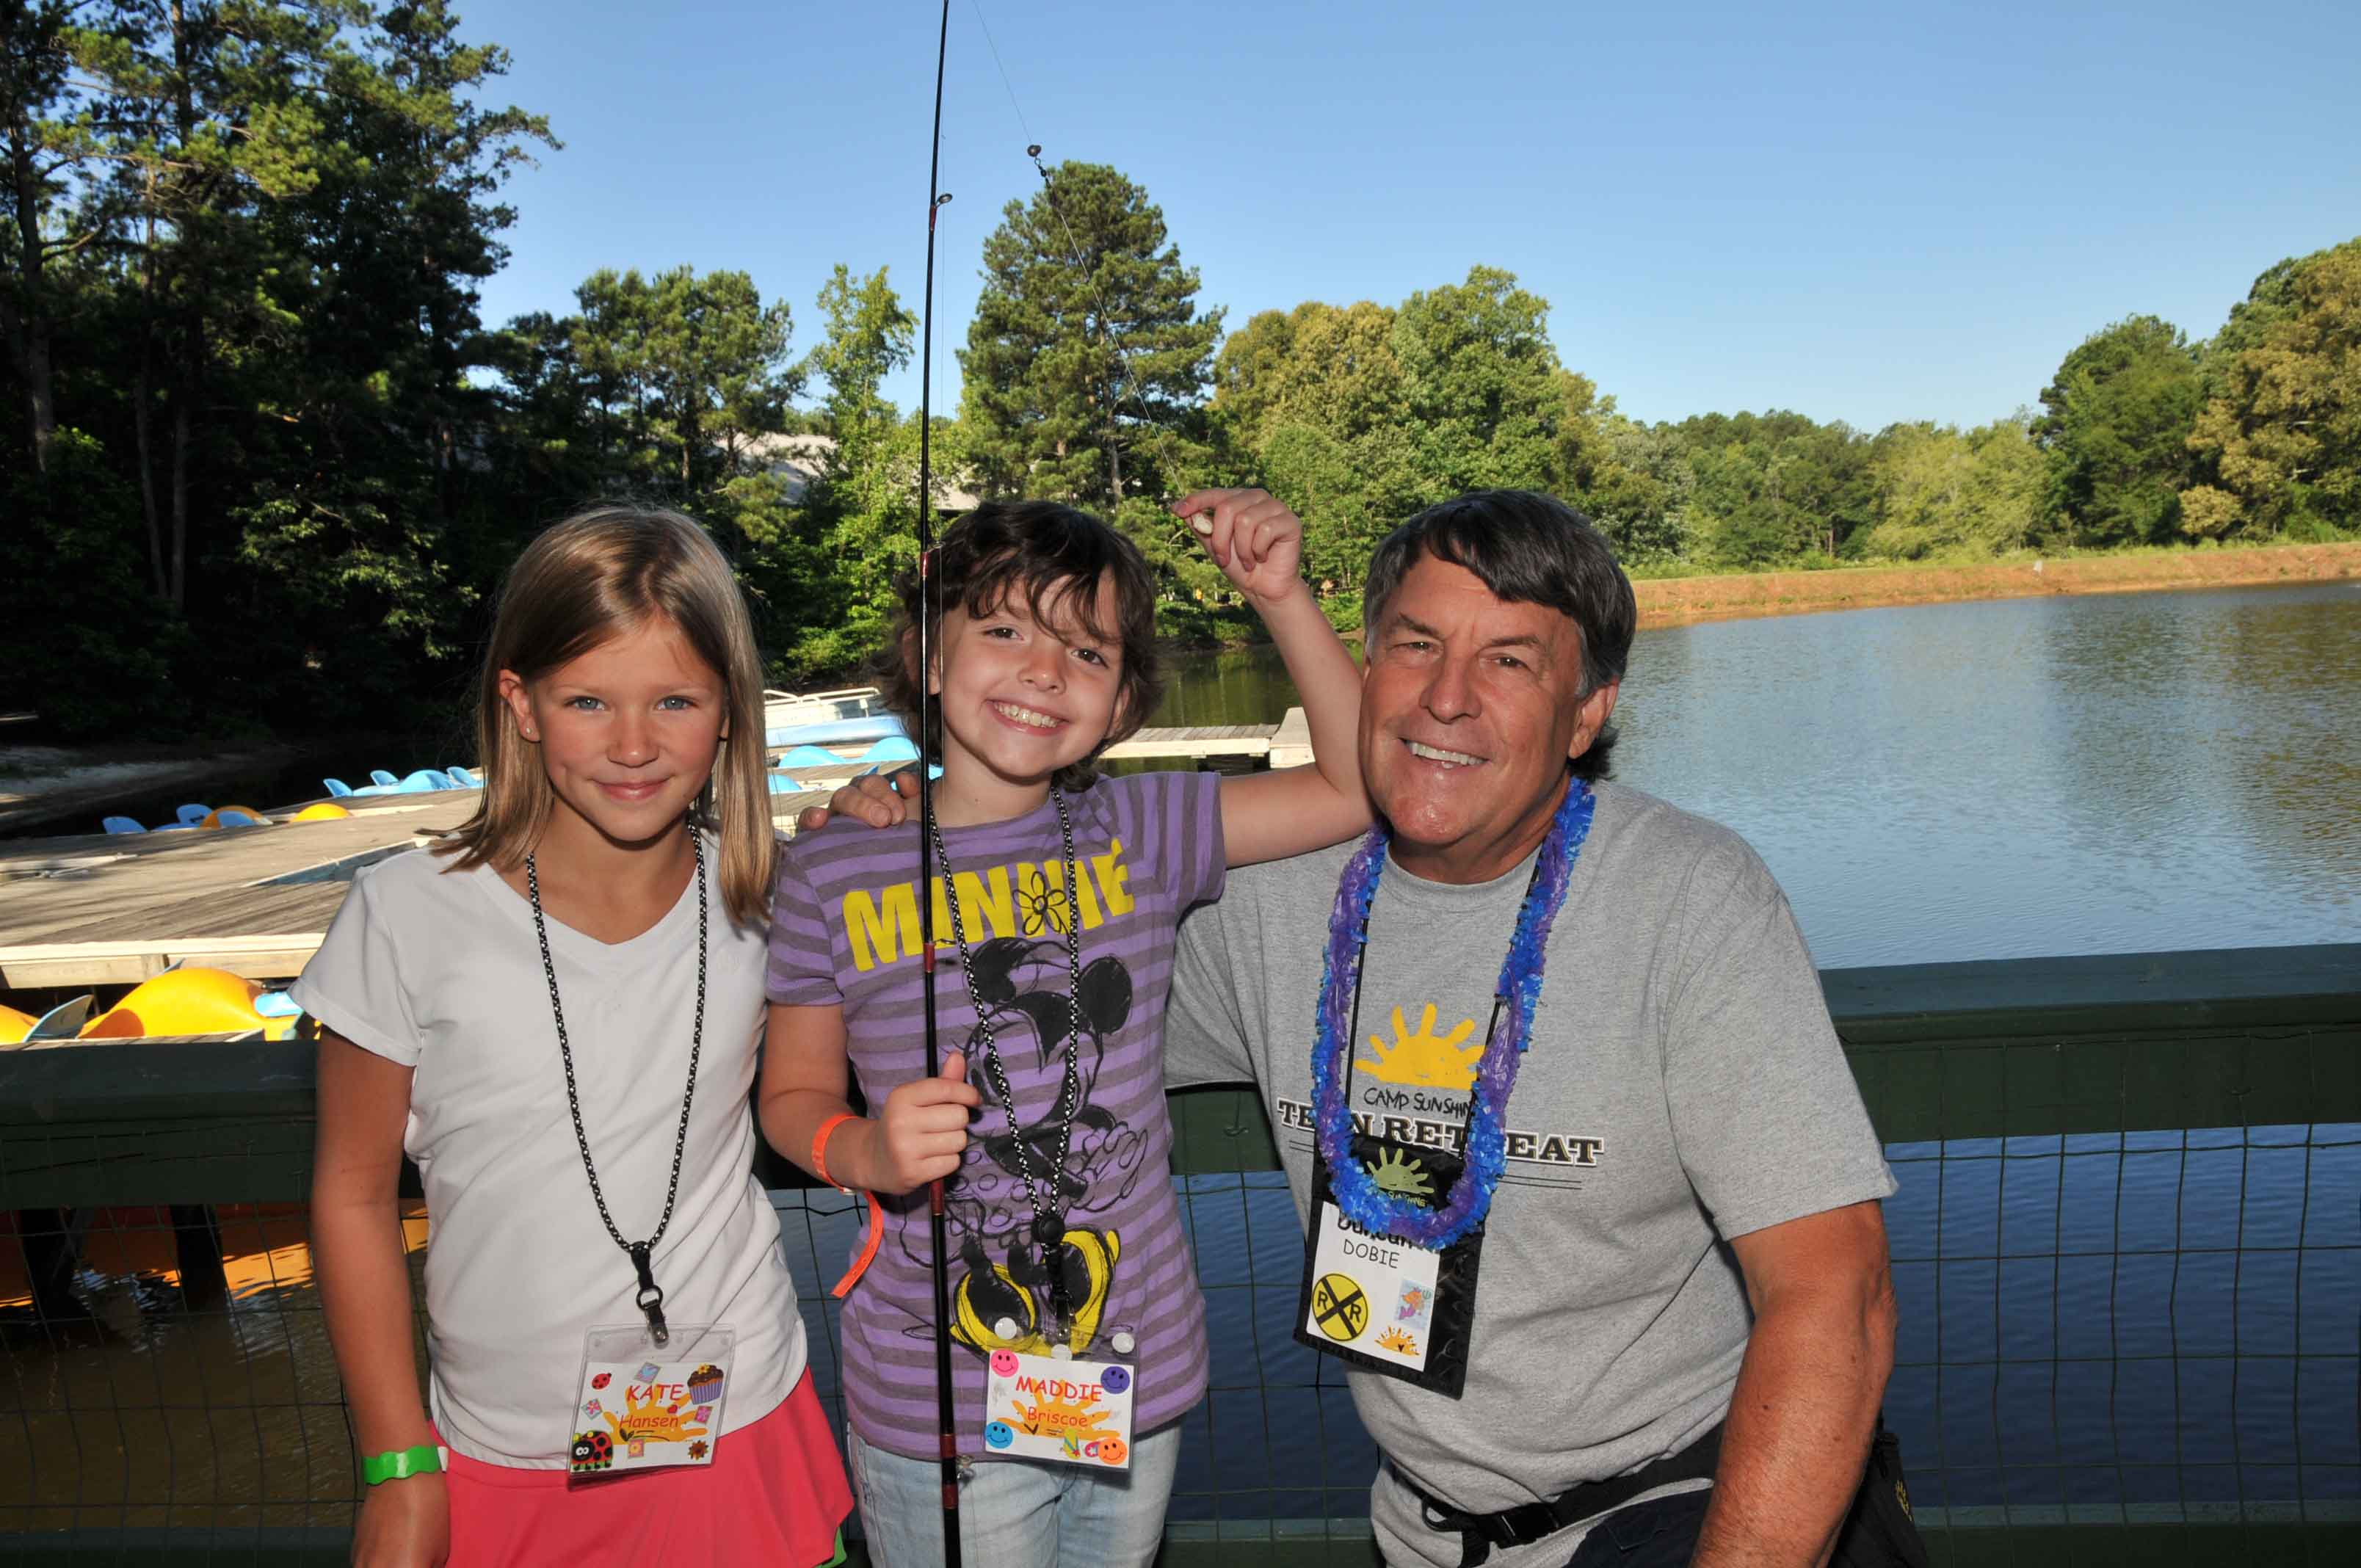 Camp Sunshine relies heavily on donations, so the money from the Betty France Humanitarian Award and possible $100,000 grand prize would be quite a blessing for the children who attend the camp.